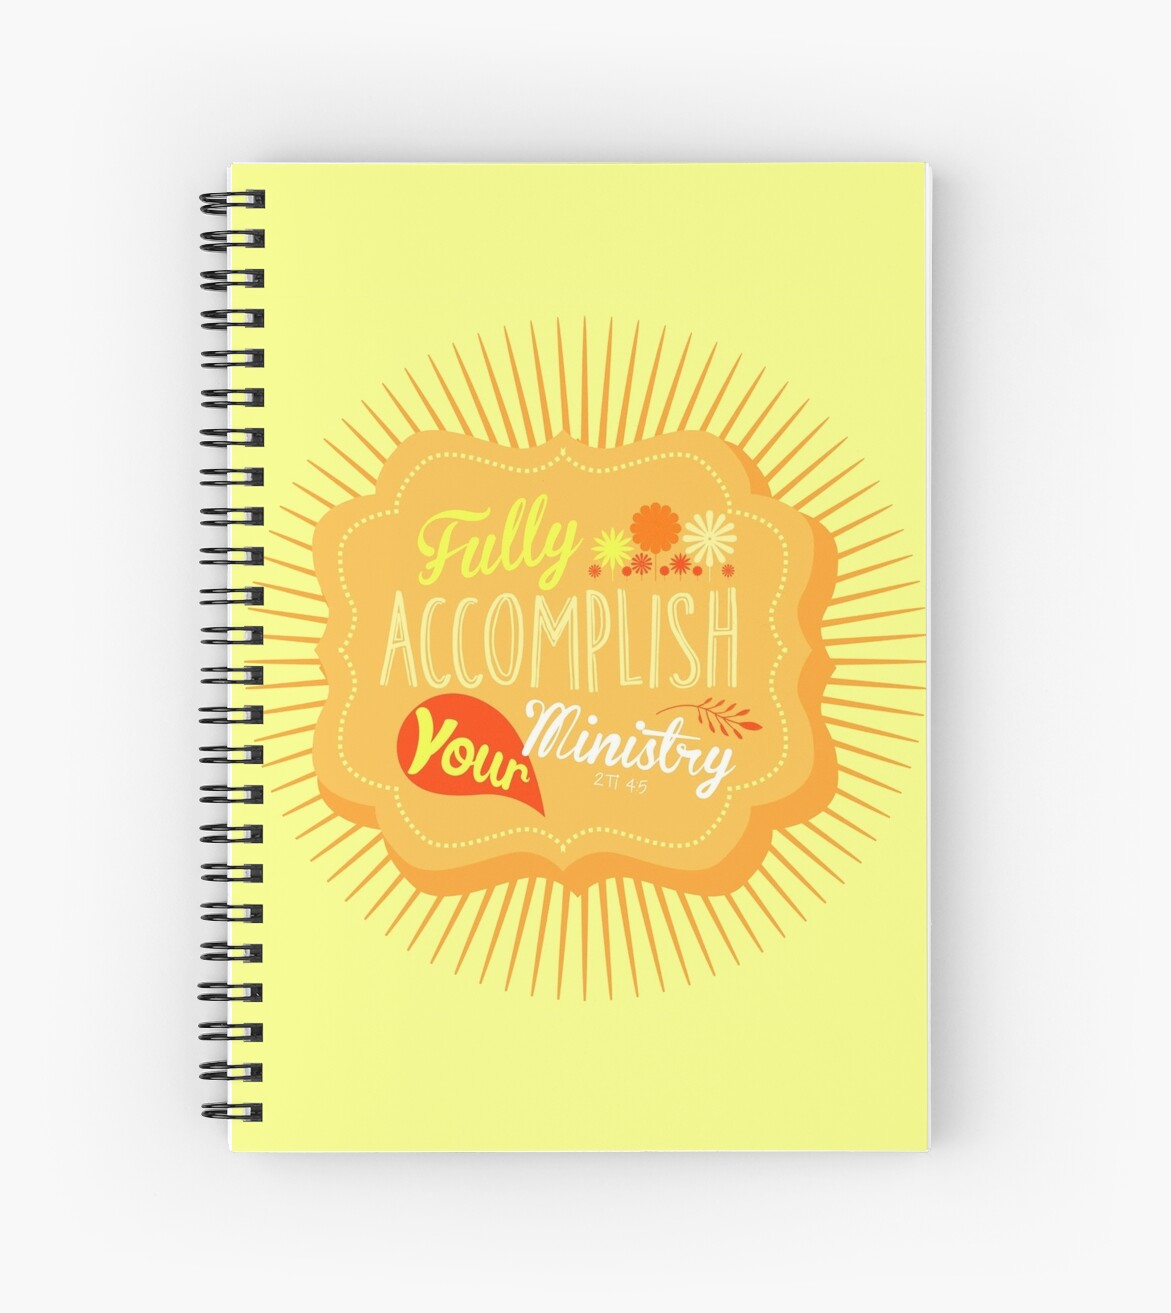 Fully Accomplish Your Ministry (Yellow) by JW ARTS & CRAFTS